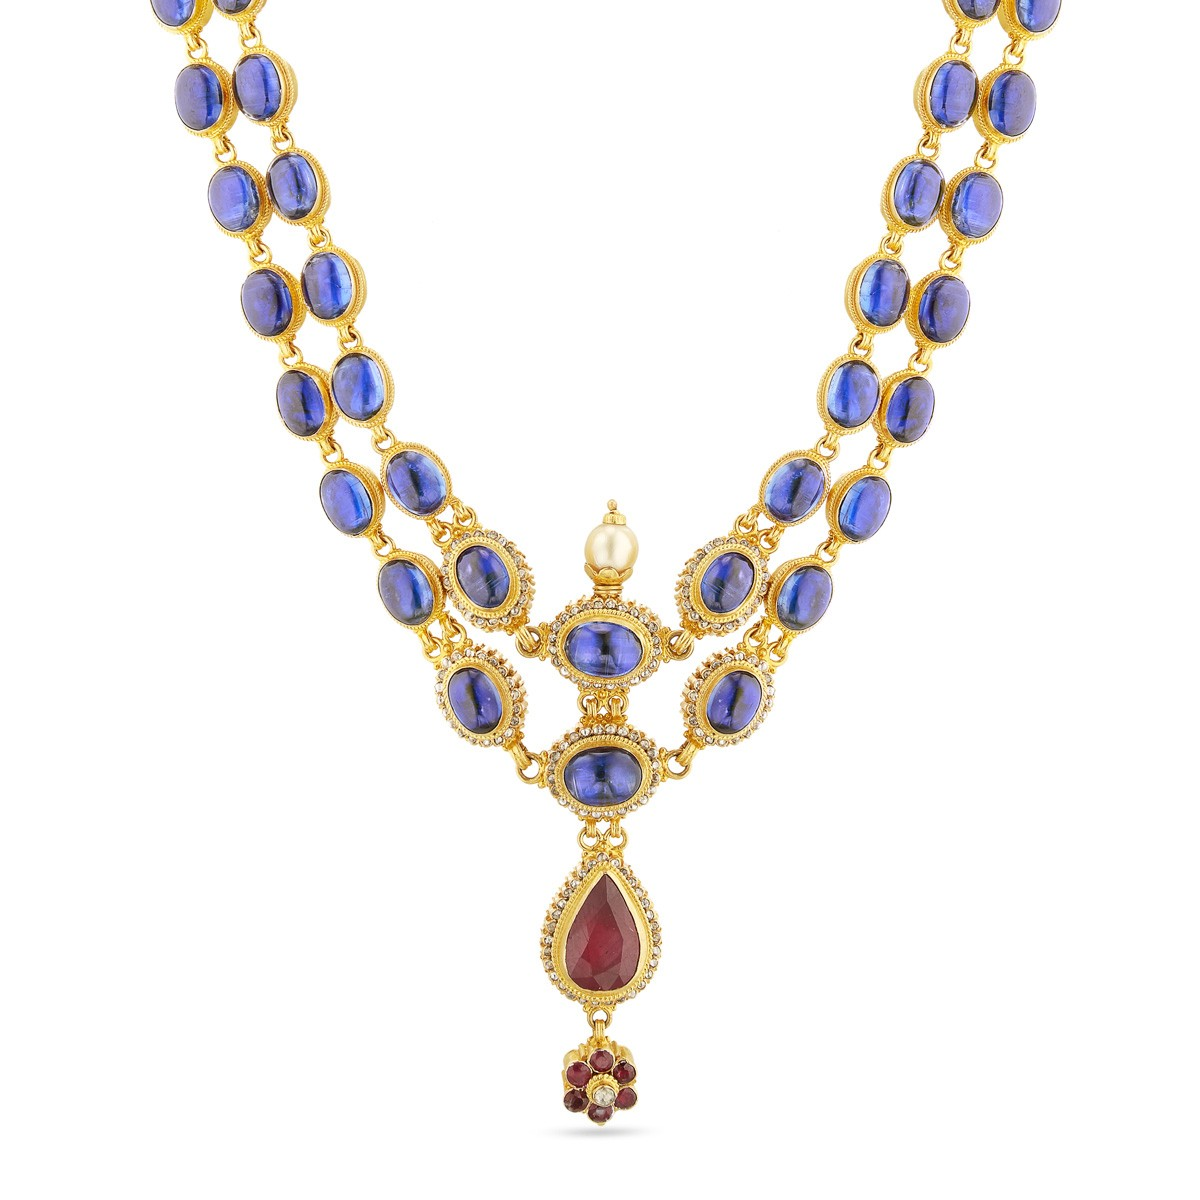 blue sapphire necklaces svtm necklace gold jewellery